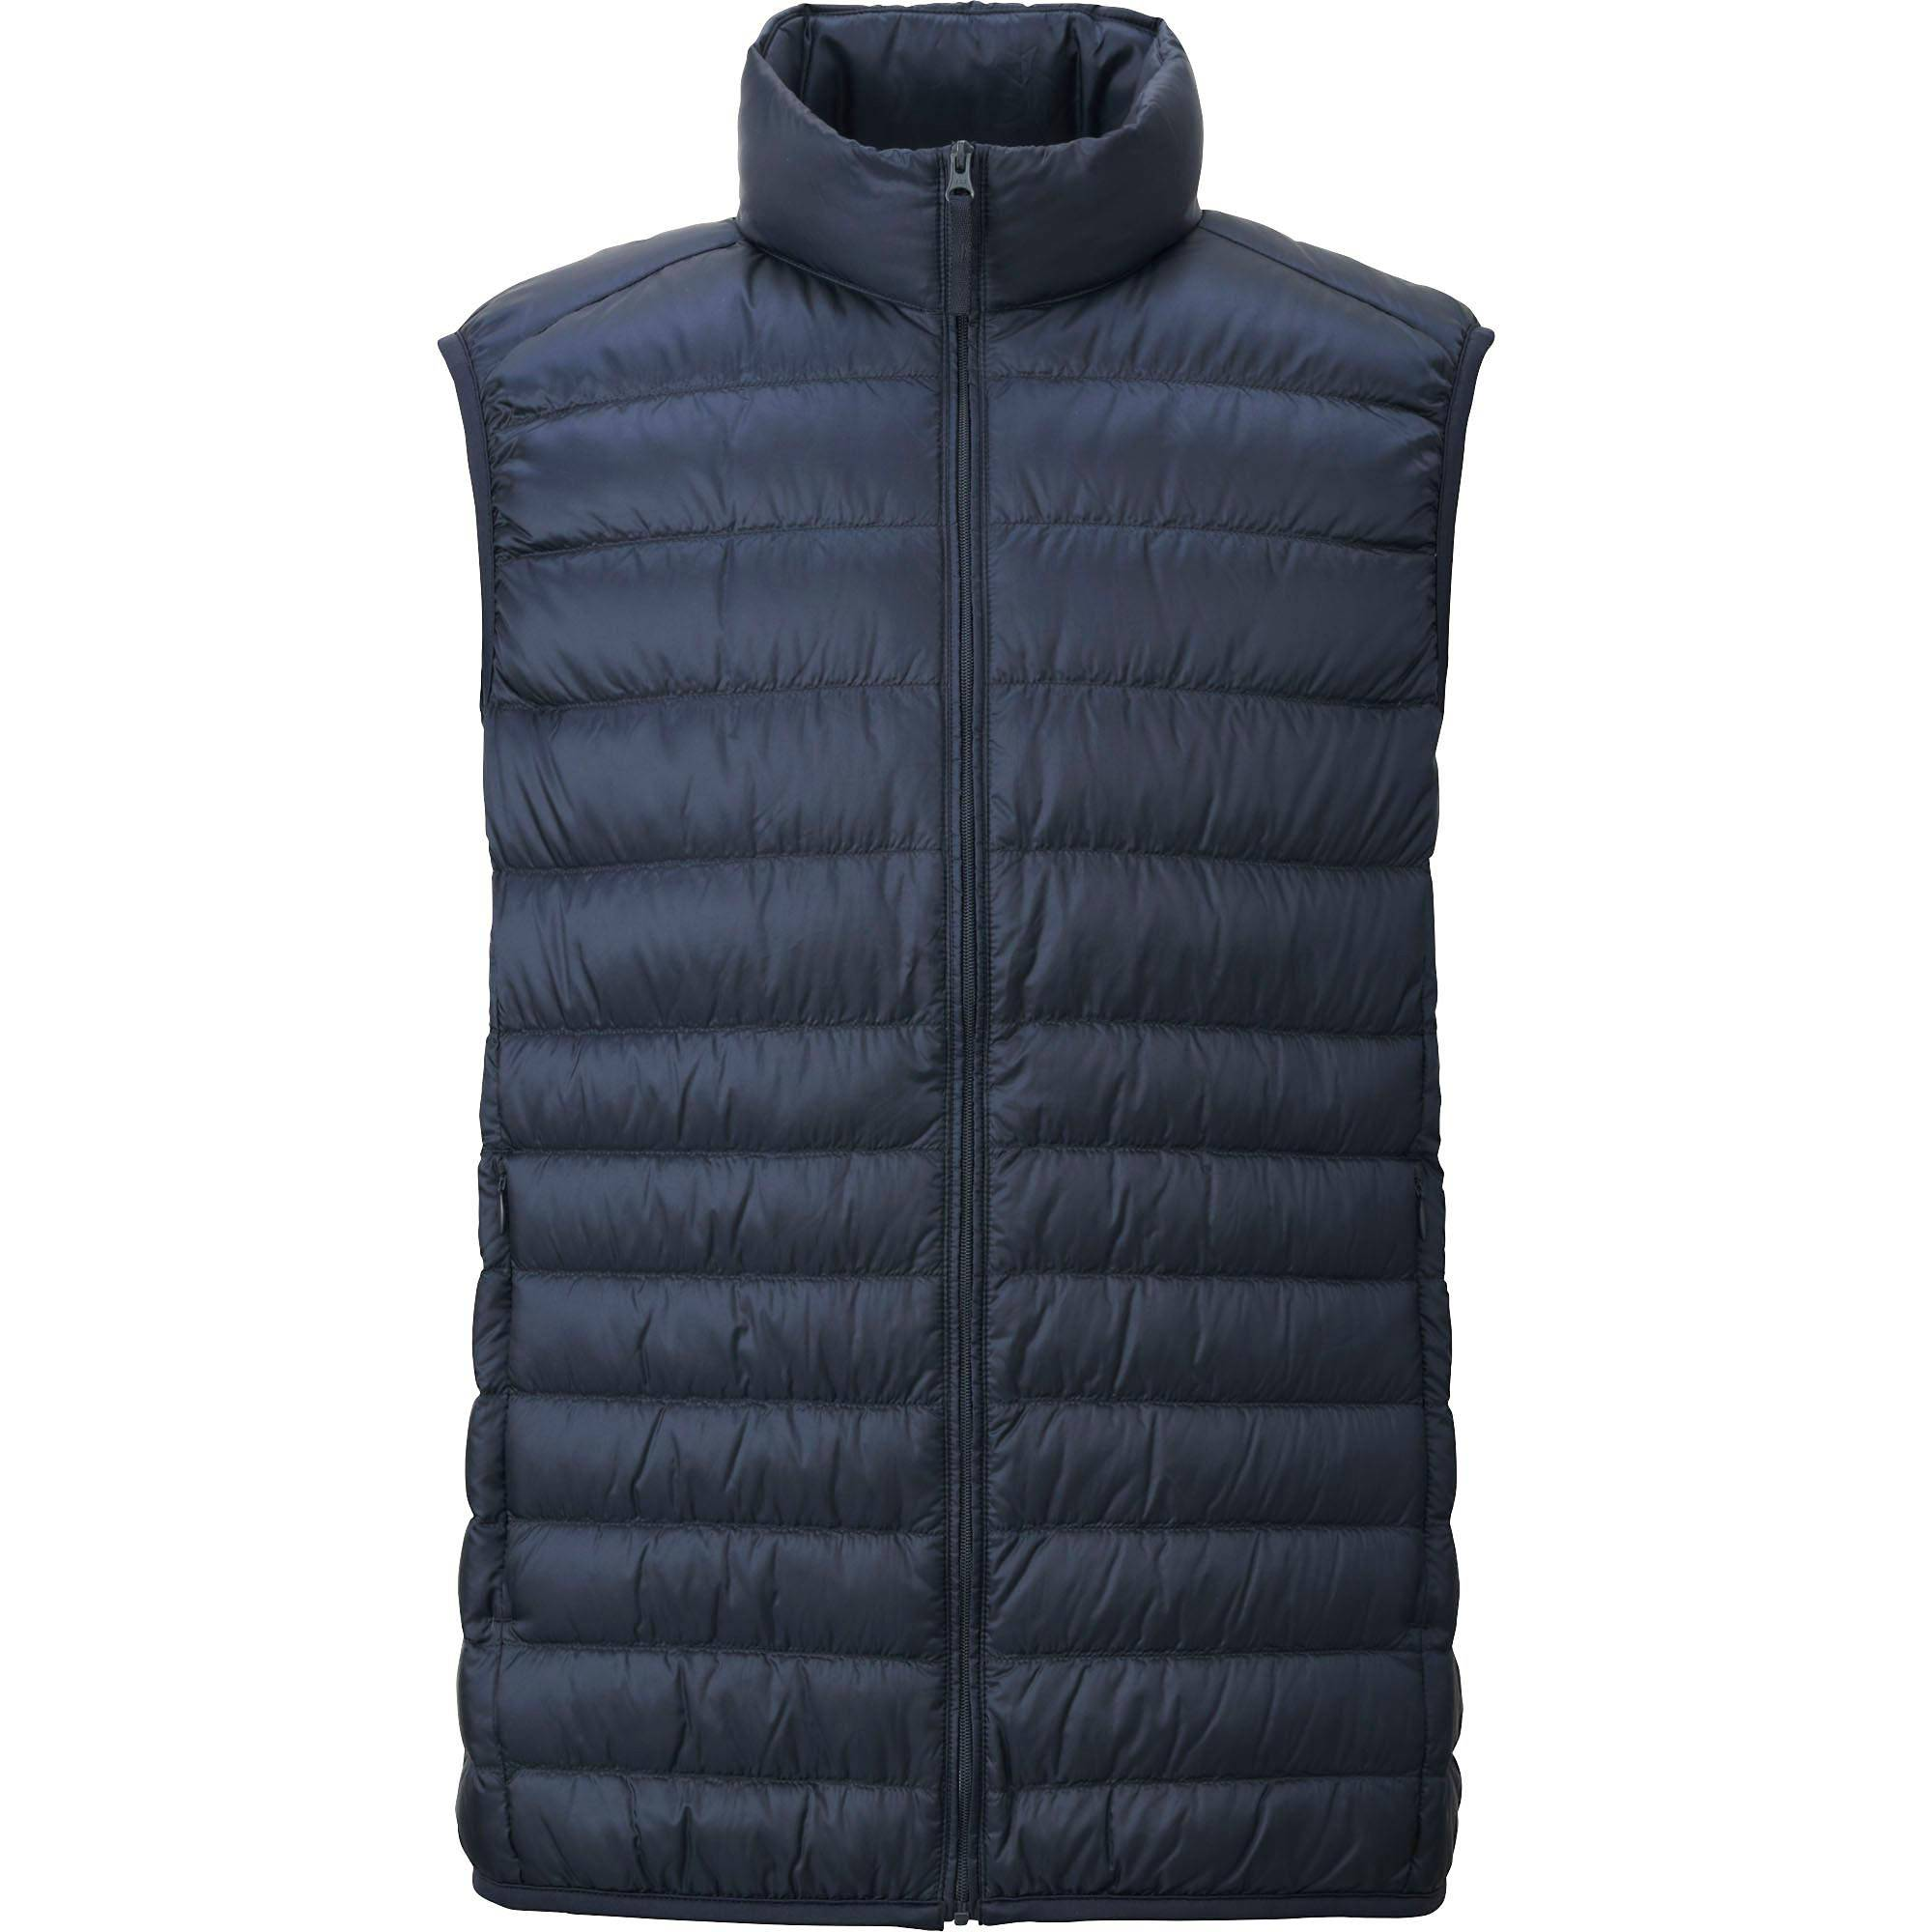 men ultra light down vest, light gray, small nkjfmrg